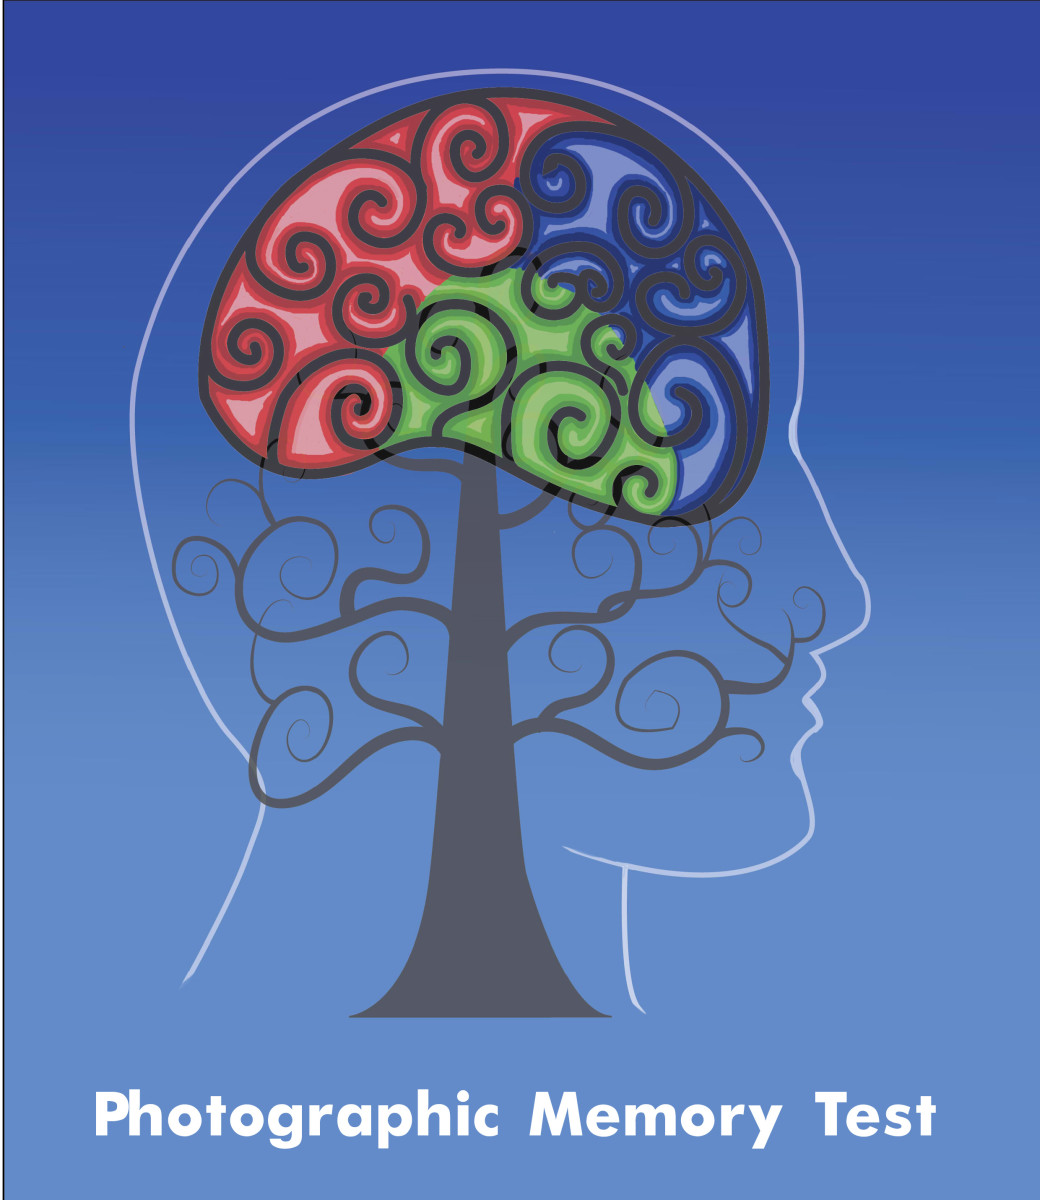 Do You Have a Photographic Memory? Take the Photographic or Eidetic Memory Test